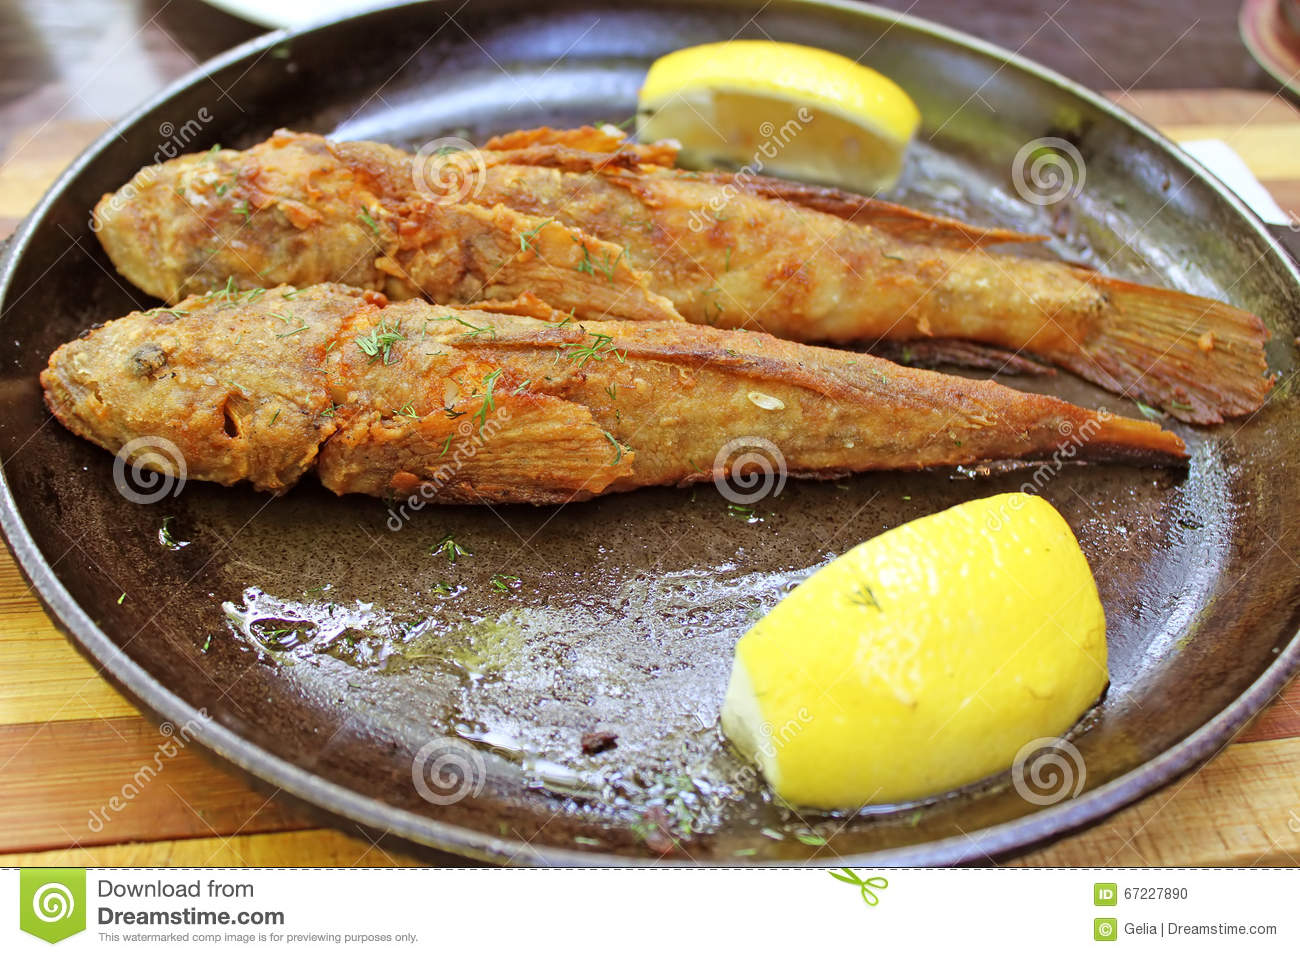 Fried red mullet fish on a wooden plate with lemon and for Eating mullet fish